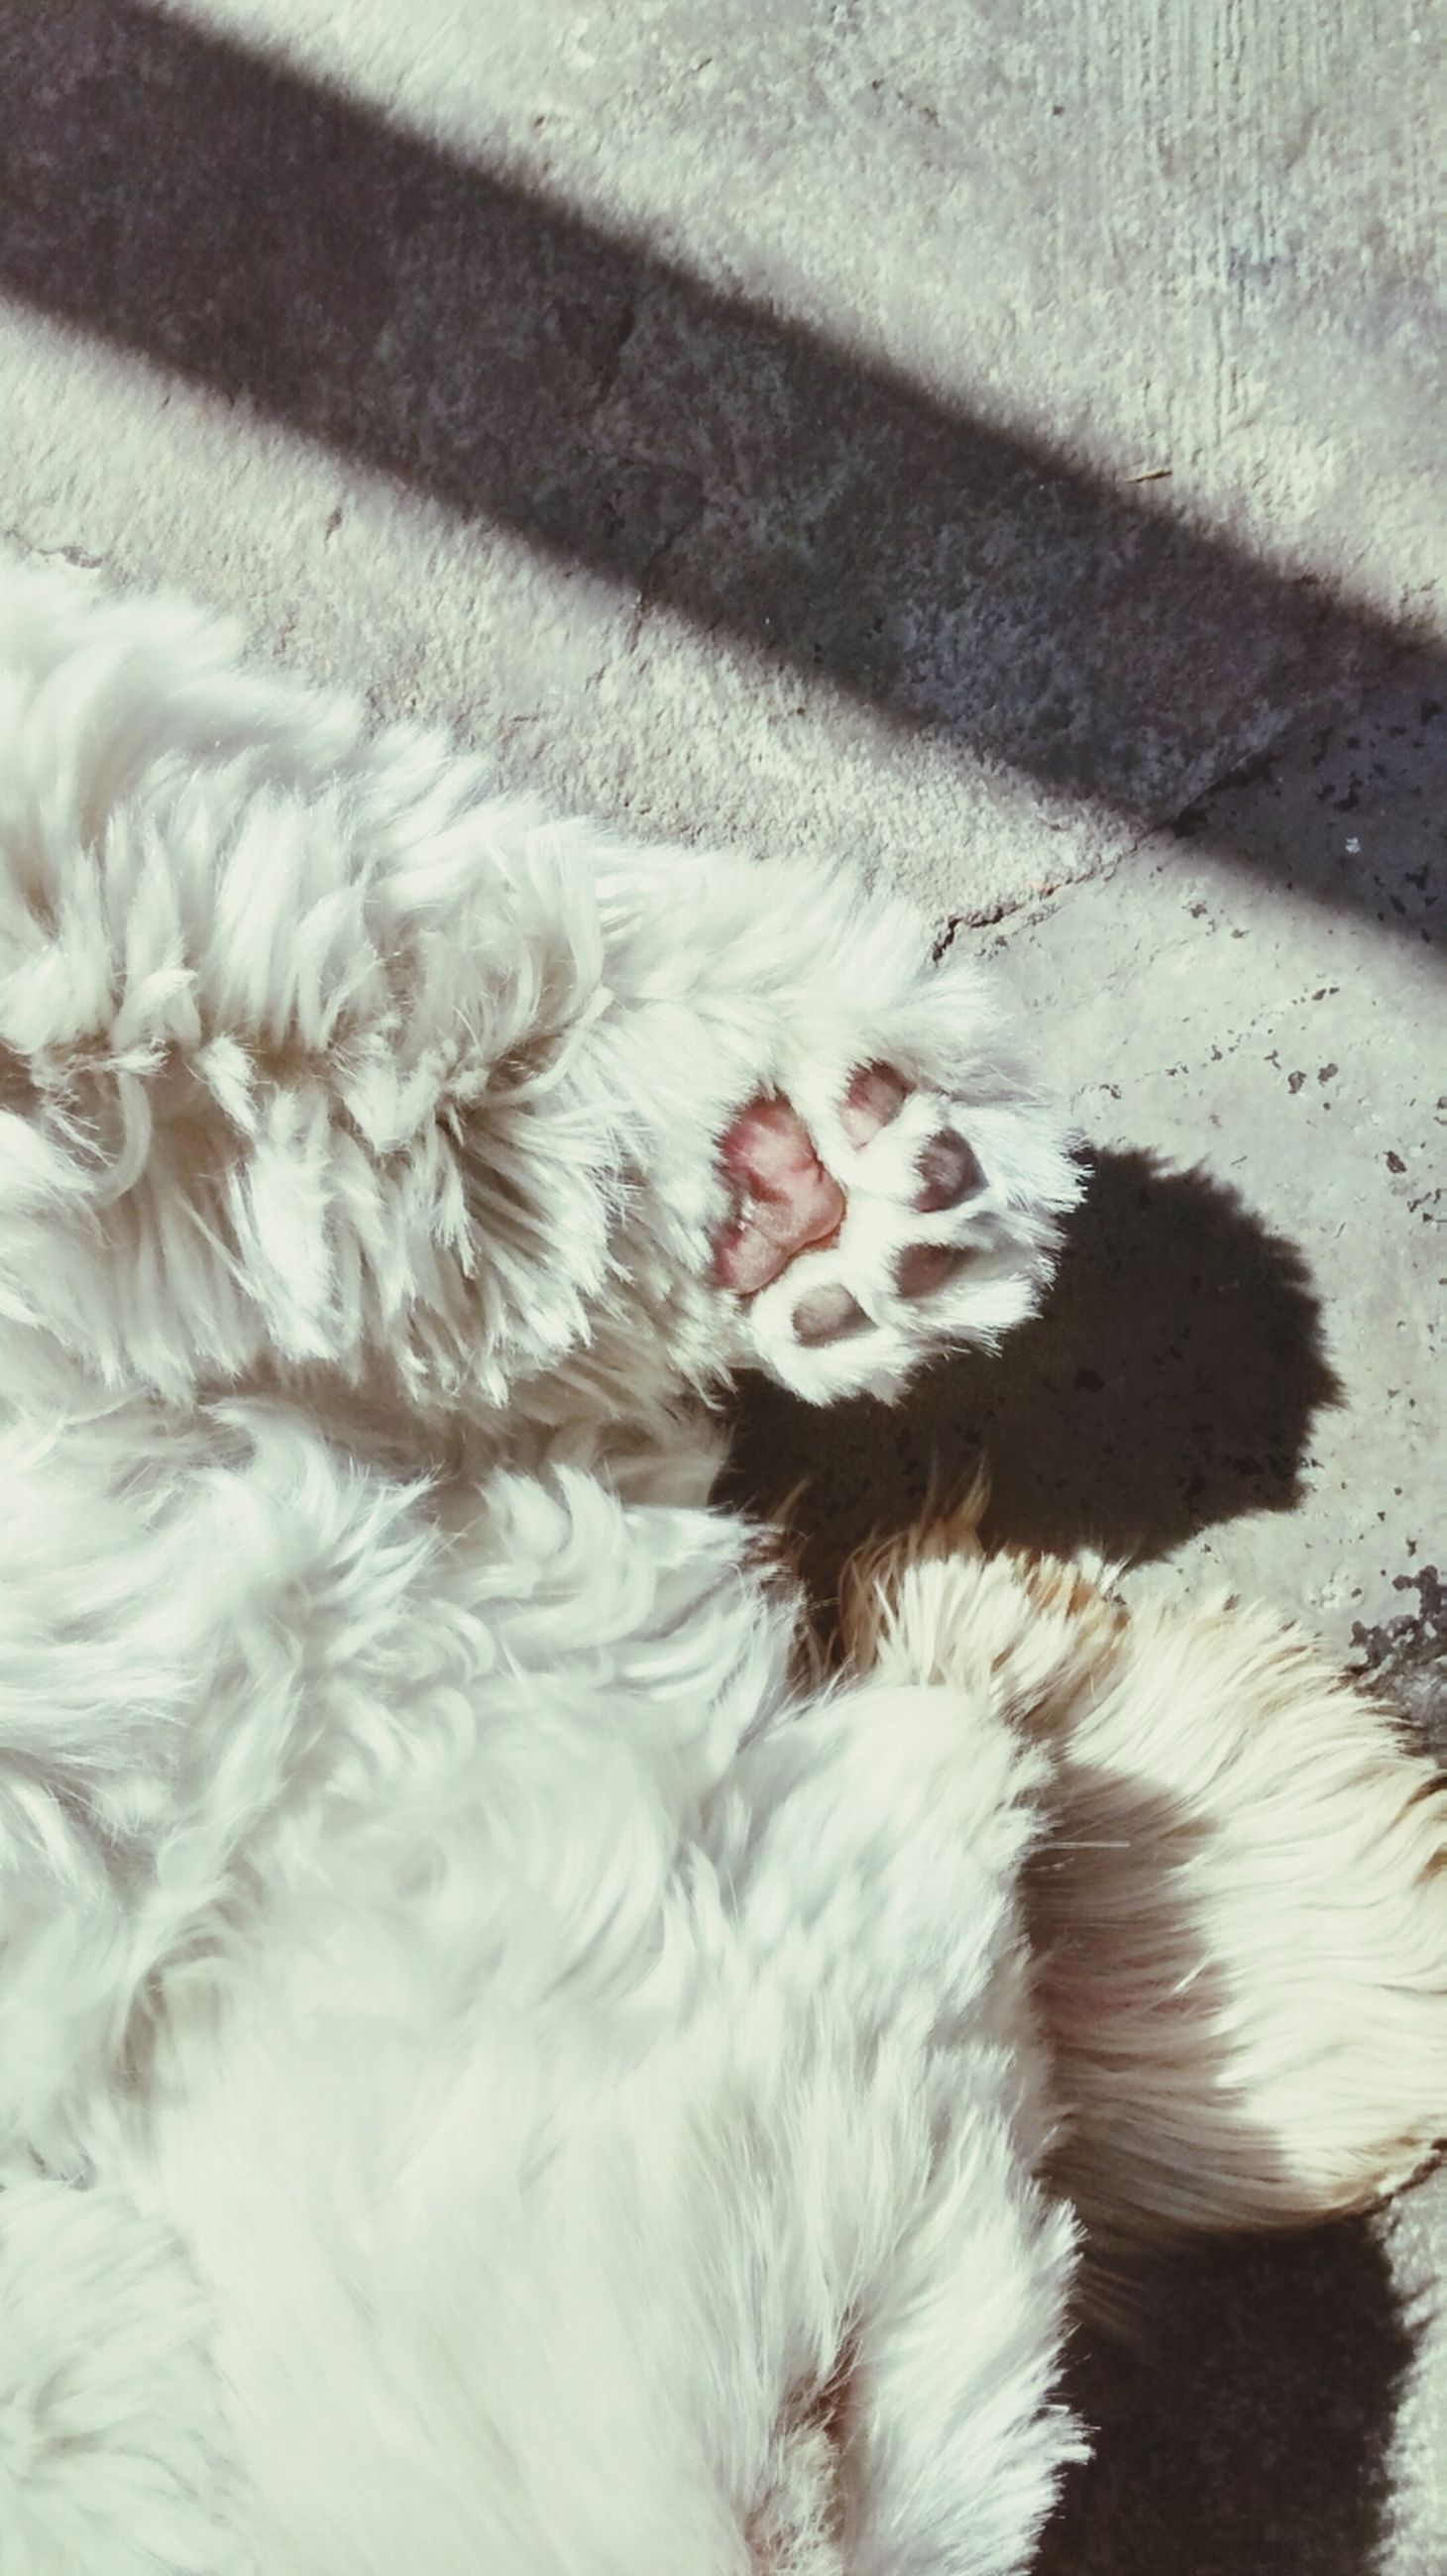 animal themes, domestic animals, pets, mammal, one animal, high angle view, domestic cat, sleeping, cat, dog, relaxation, lying down, resting, feline, white color, no people, eyes closed, animal hair, day, cute